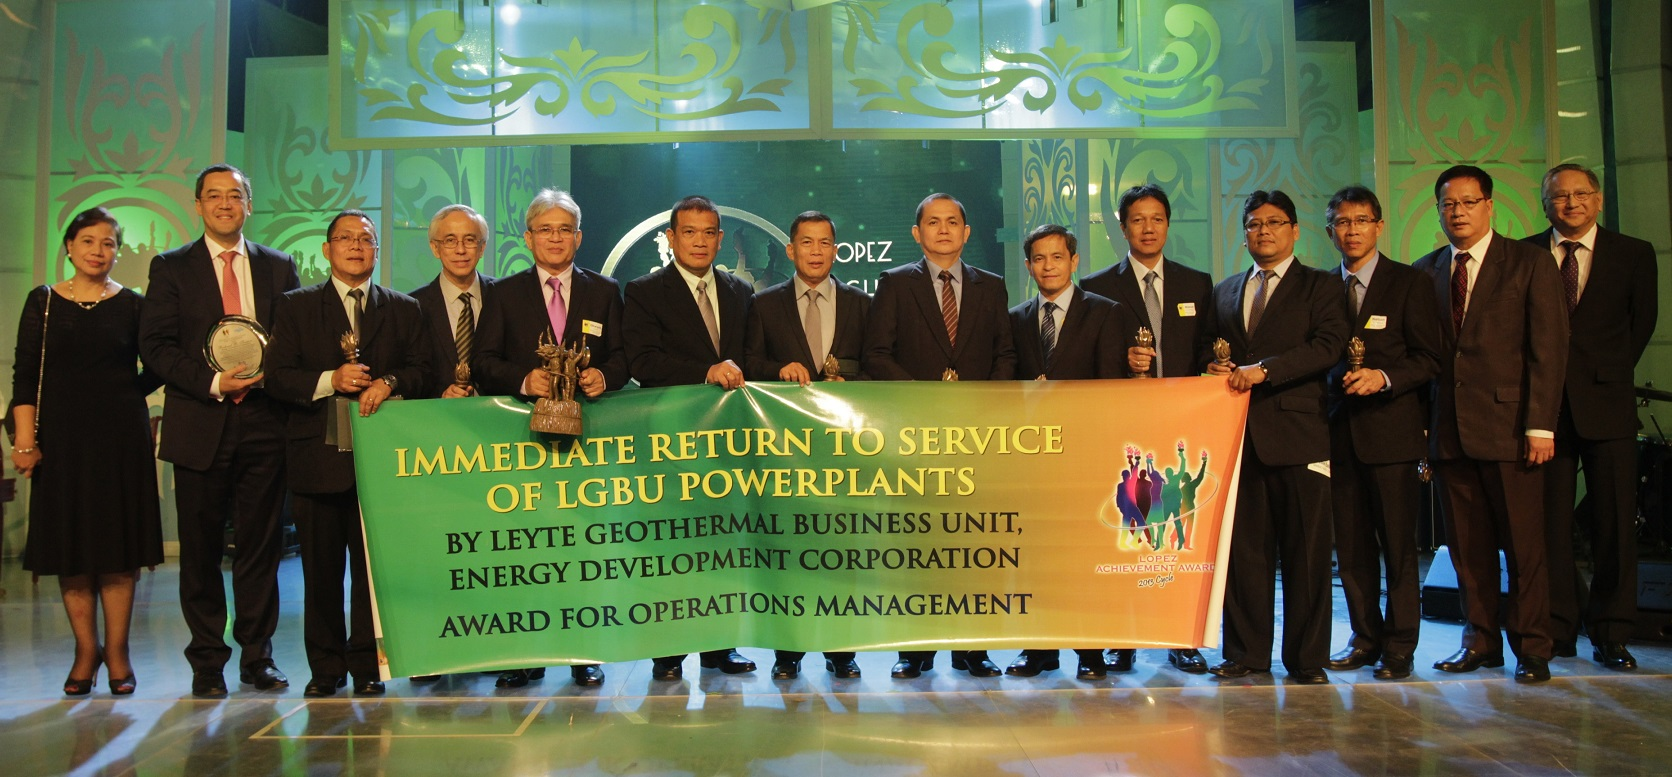 "Energy Development Corporation's 'Immediate Return to Service of Leyte Geothermal Business Unit Power Plants"" (Operations Management)"